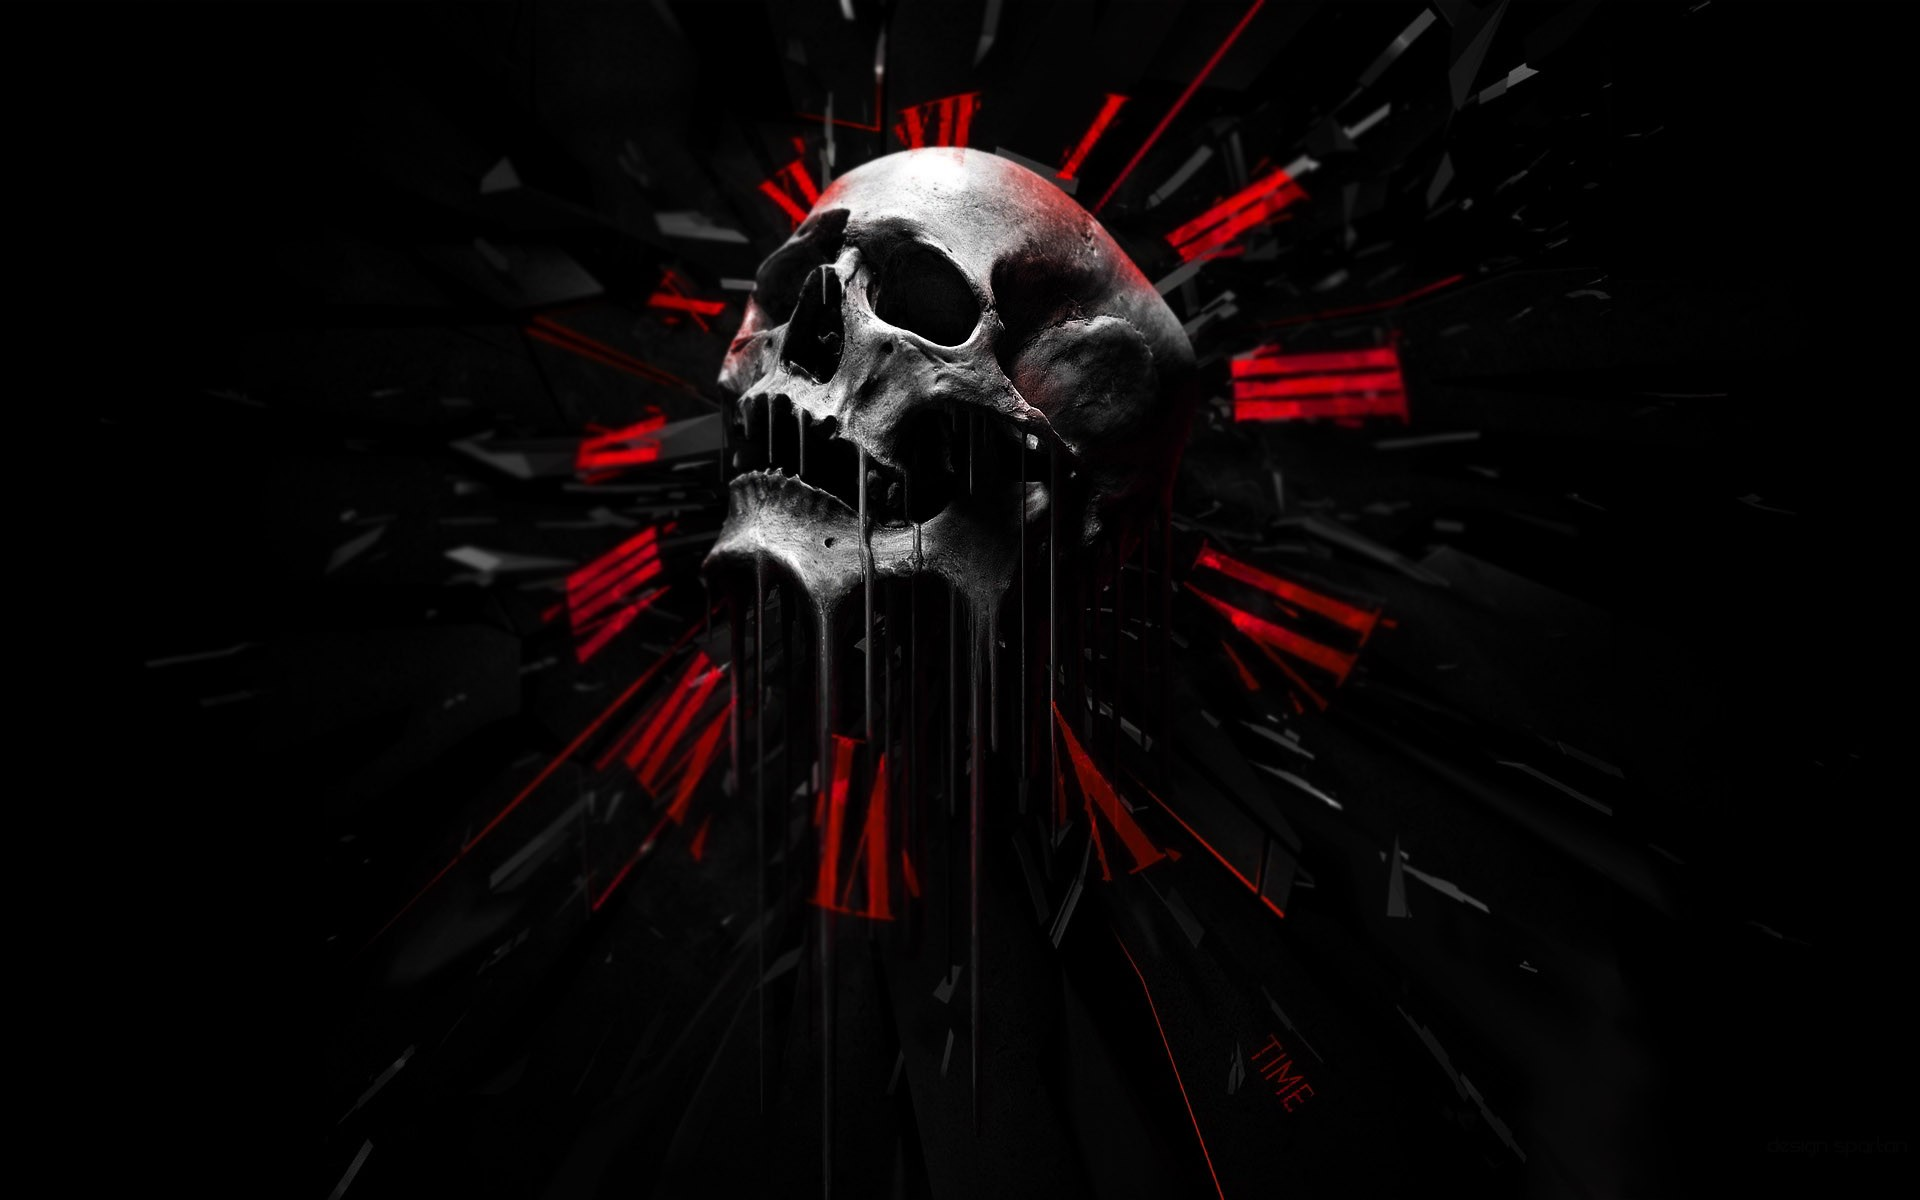 Wallpapers HD Black And Red Group 91